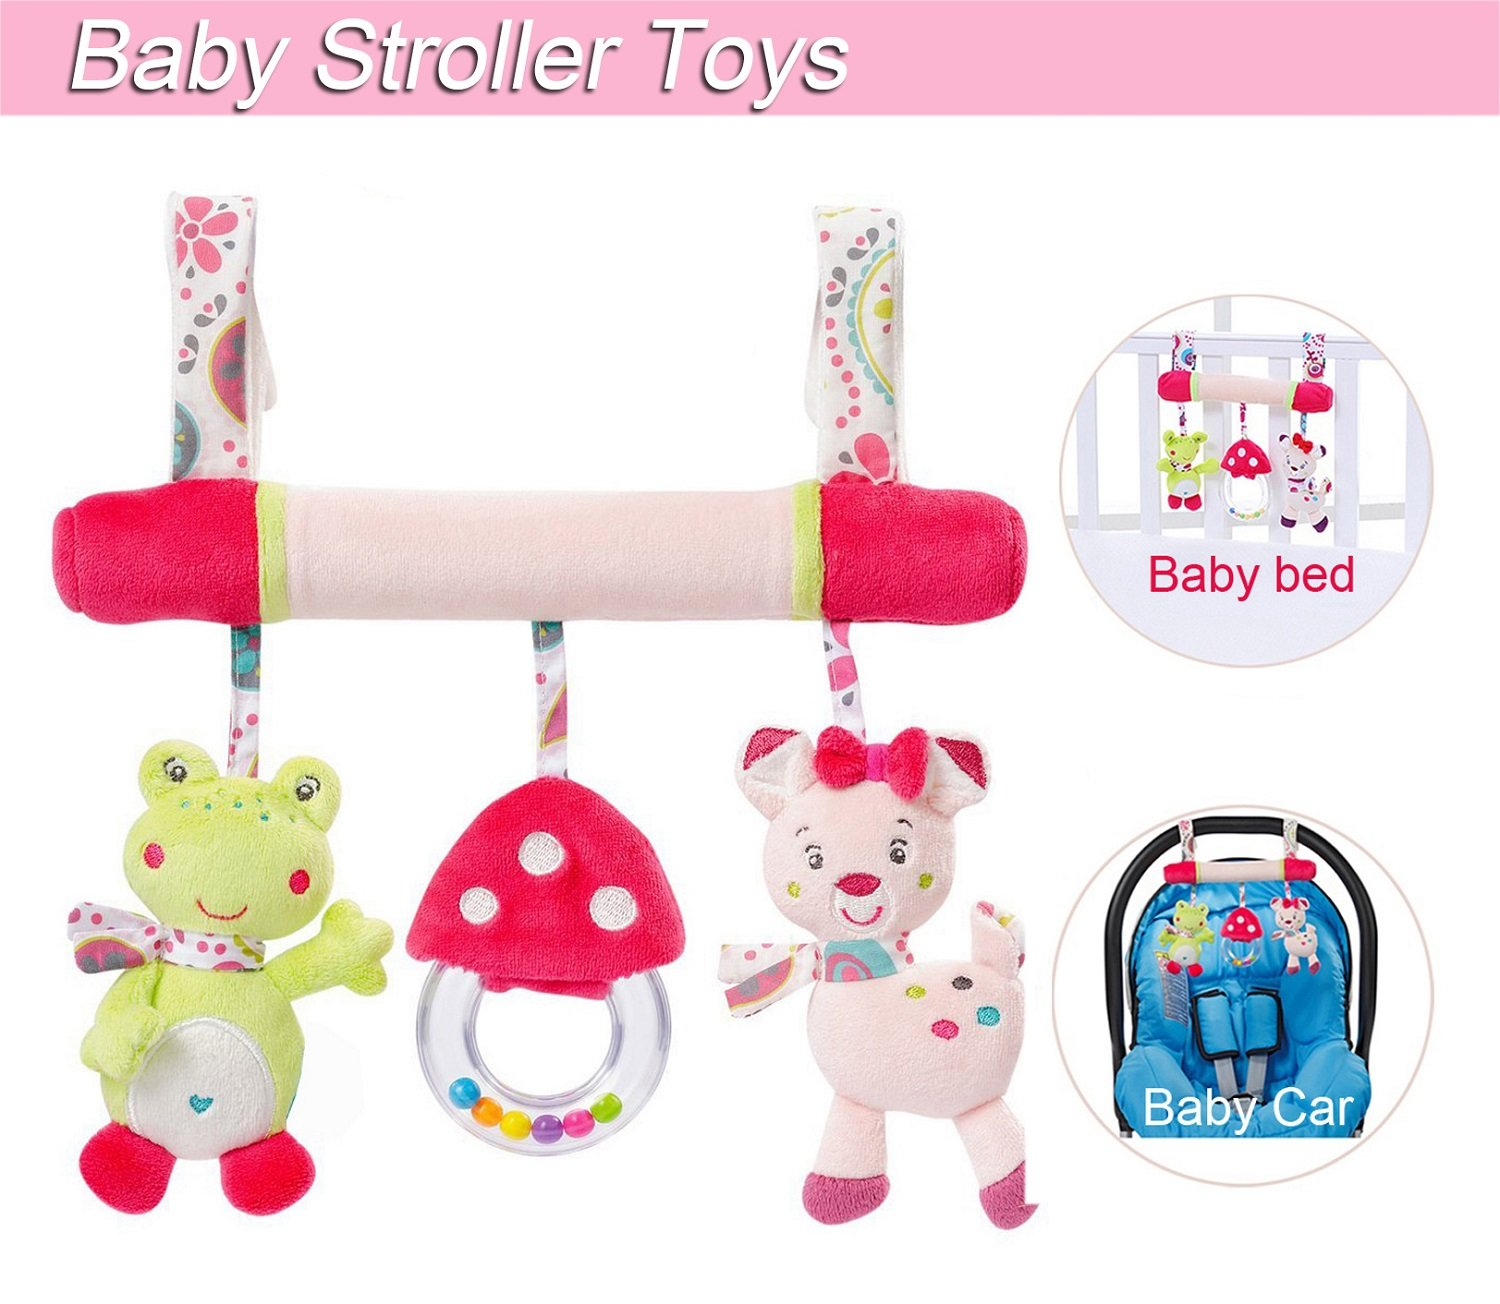 Baby Stroller Toys, Infant Hanging Toys, Newborn Baby Car Bed Pram Crib Stroller Cute Cat Frog Squeak Leedemore